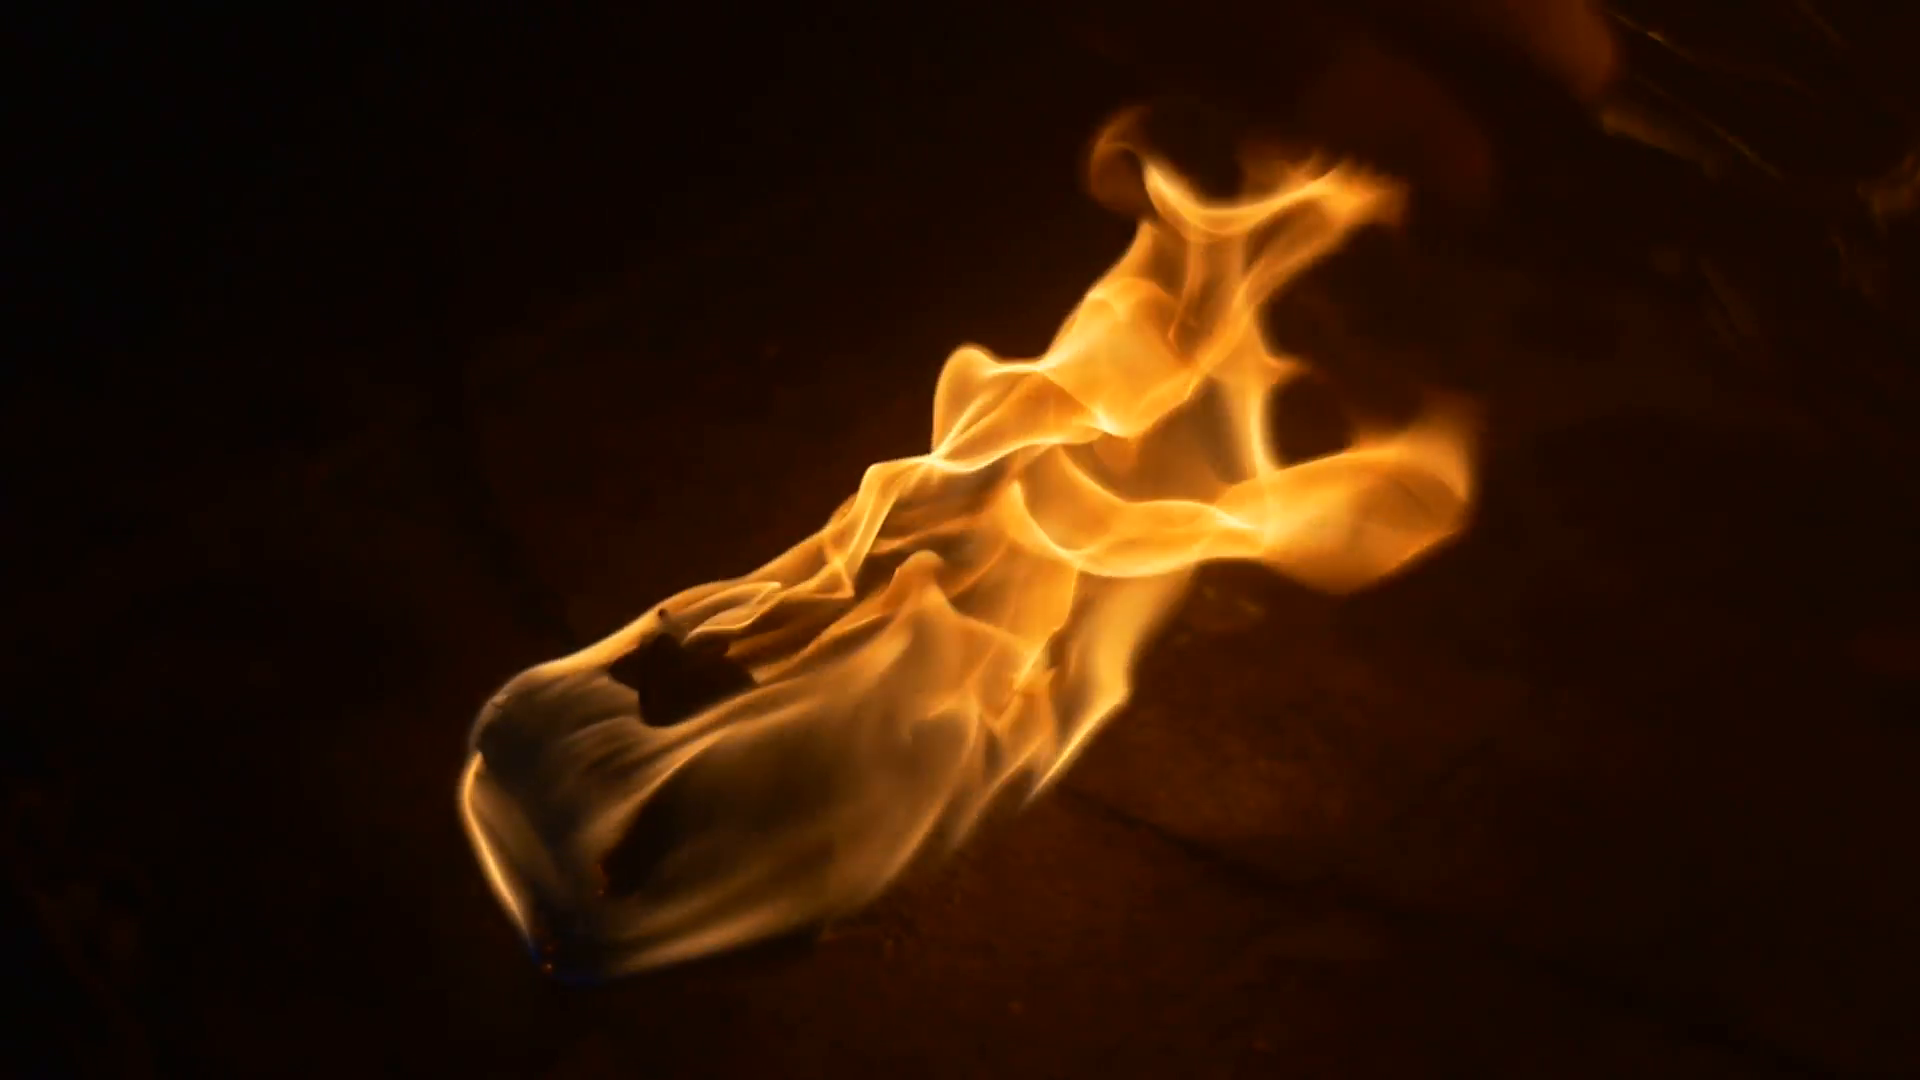 Fire Torch Is Burning Slow Motion Male H 101932   PNG Images   PNGio 1920x1080